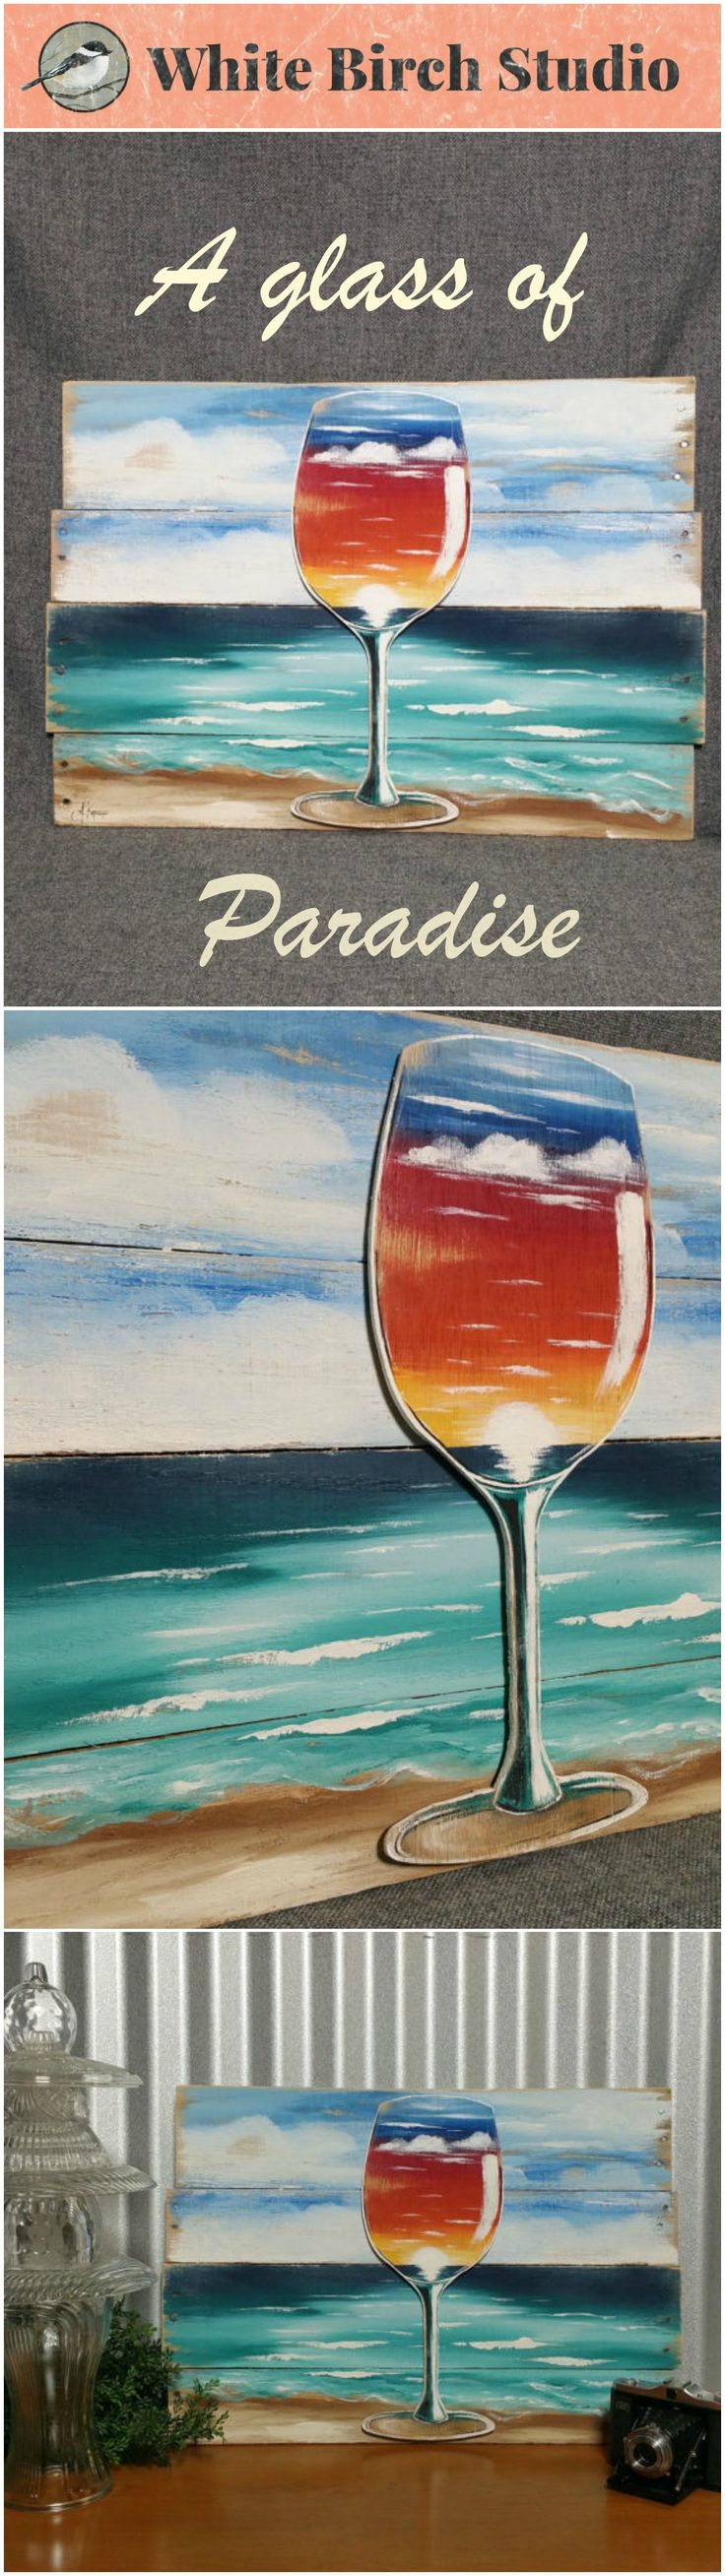 """Beach Painting Pallet art, Wine glass painting, Sunset painting, Distressed Wood Art seascape, Hand painted, upcycled pallet  Dimensions are APPROX. 22 1/2 inches wide x 15 1/2 inches high   This beach scene is painted on reclaimed wood. The wine glass is cut out of thin wood and has a sunset painted on it. A """"glass of paradise"""". This piece has been sanded for an aged effect."""